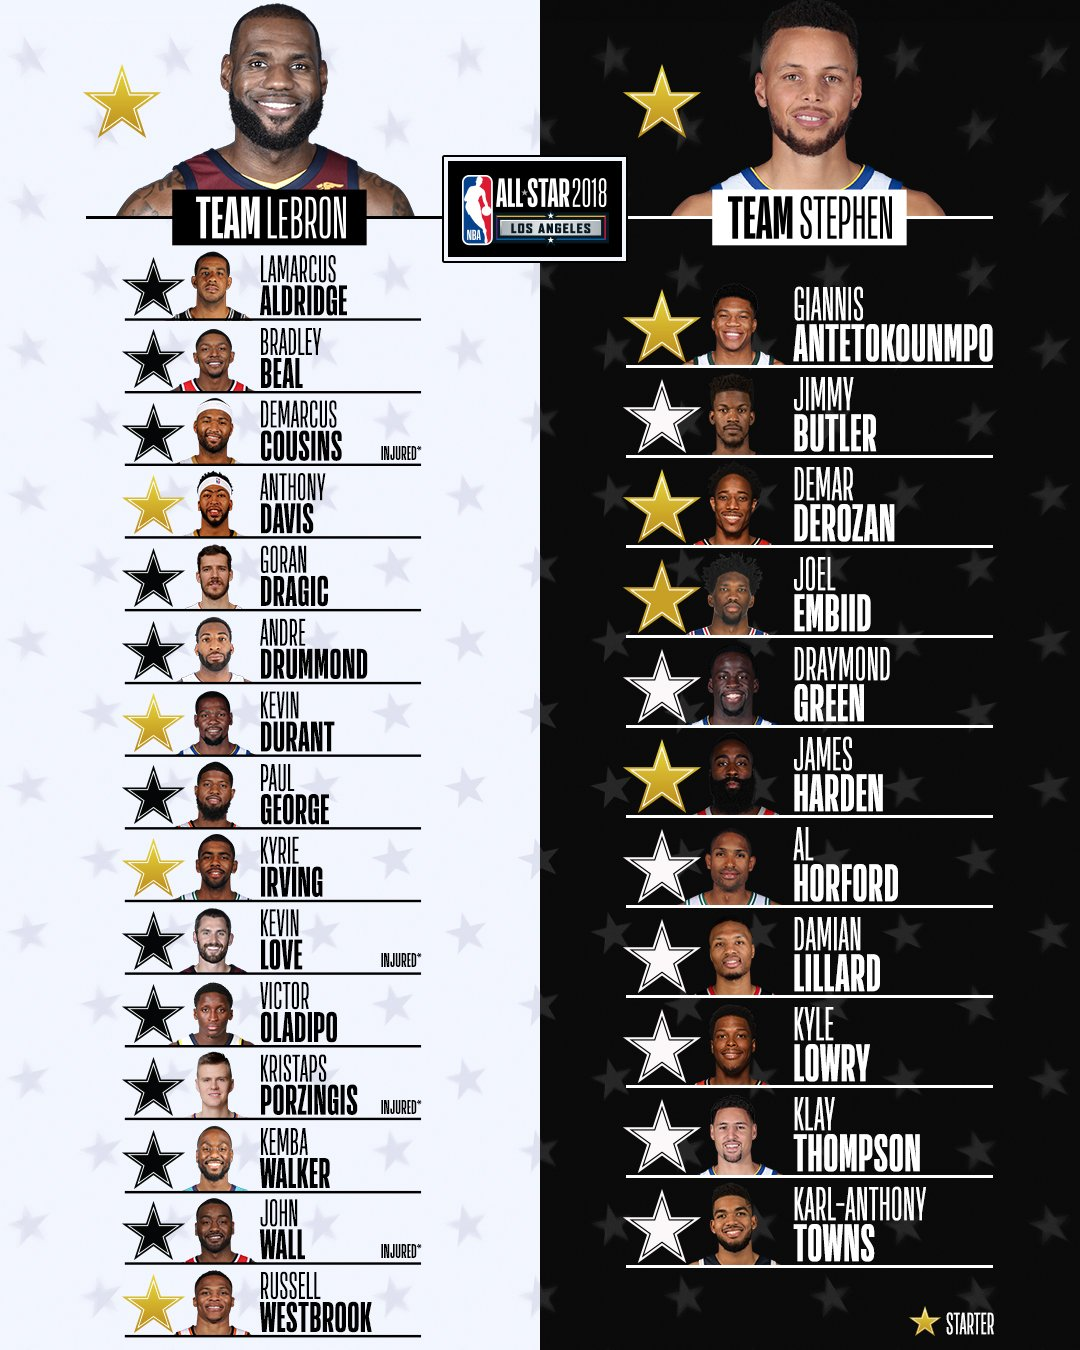 Get familiar with the #TeamLeBron and #TeamStephen rosters!   #NBAAllStar 8pm/et @NBAonTNT https://t.co/rZNXxbljdI